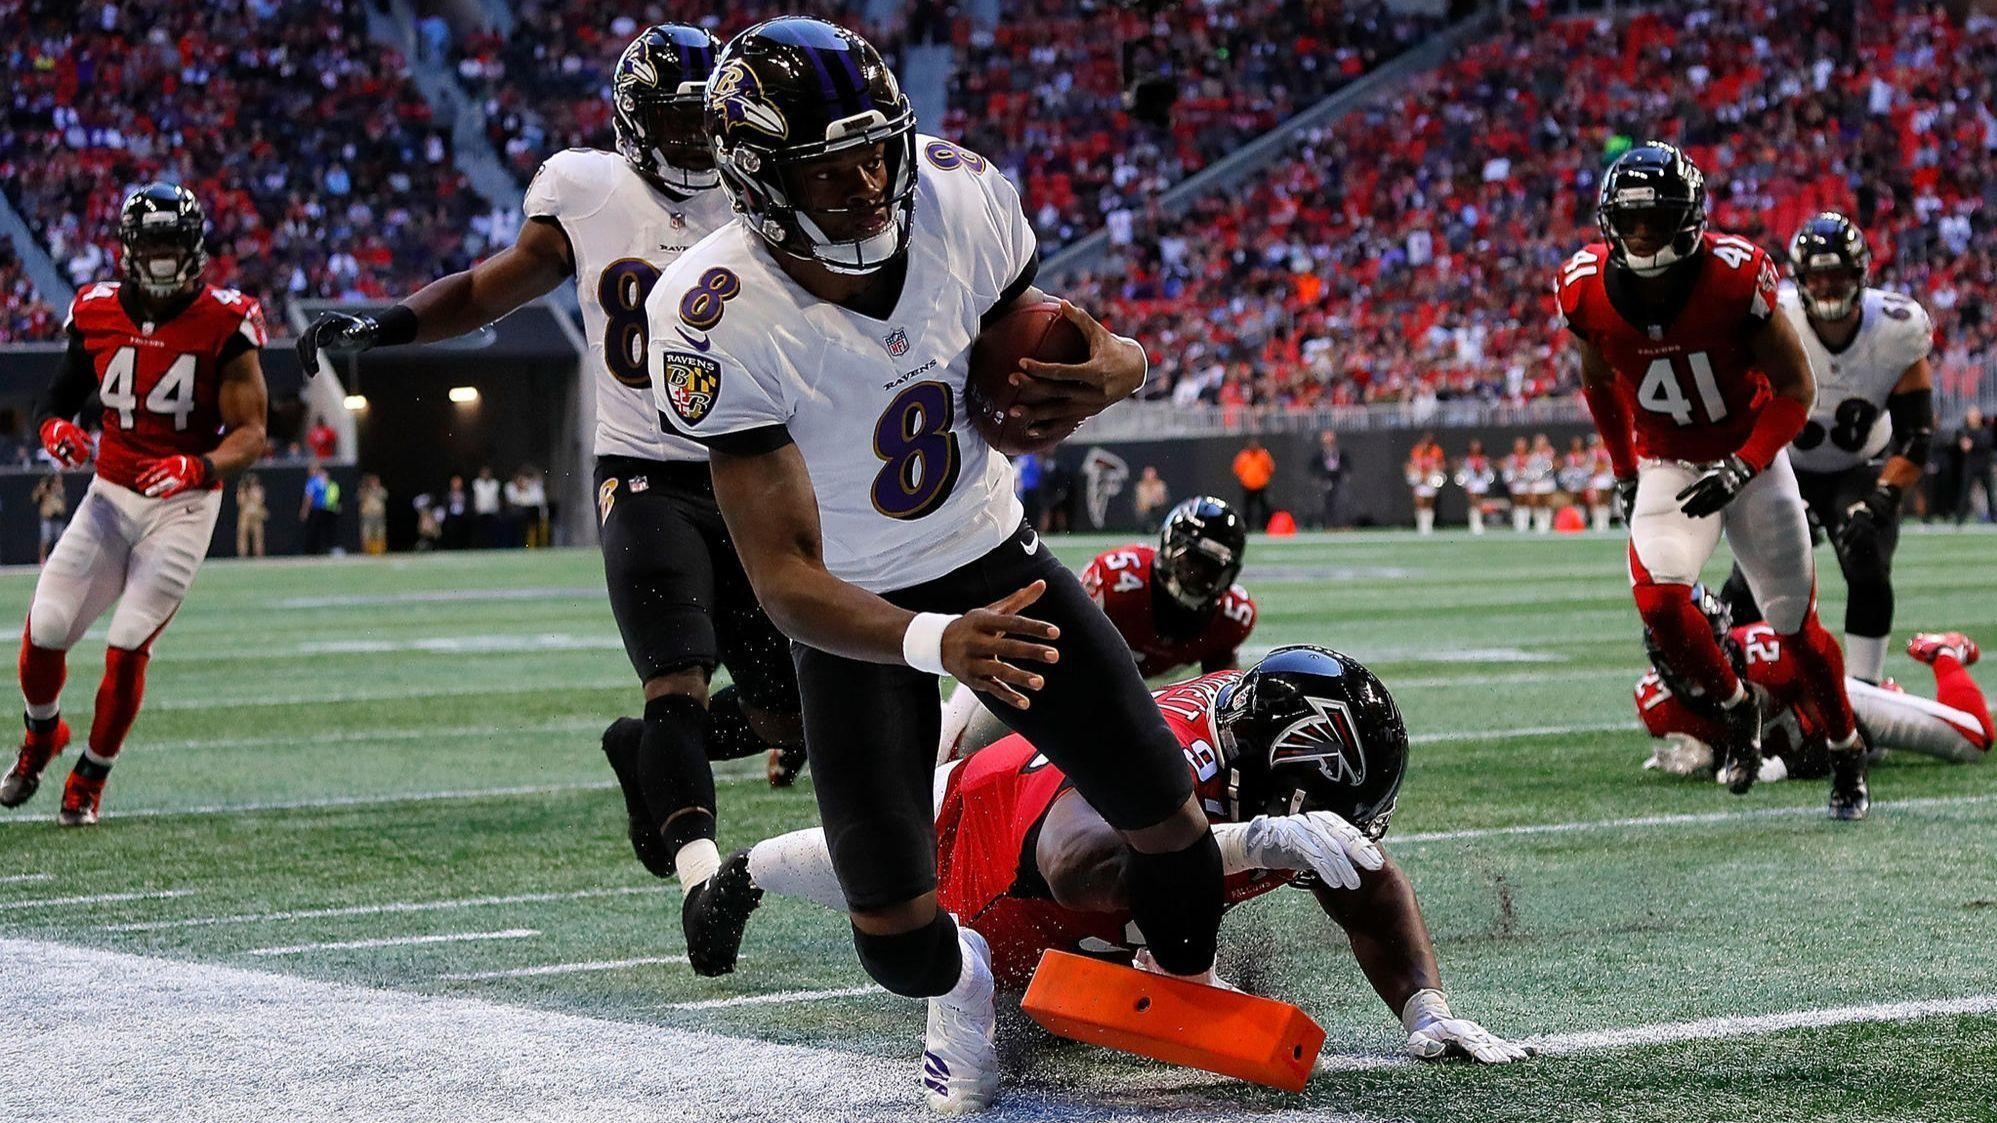 b7bba672fe7 Instant analysis: With Lamar Jackson in and out, defense leads Ravens'  26-16 win over Falcons